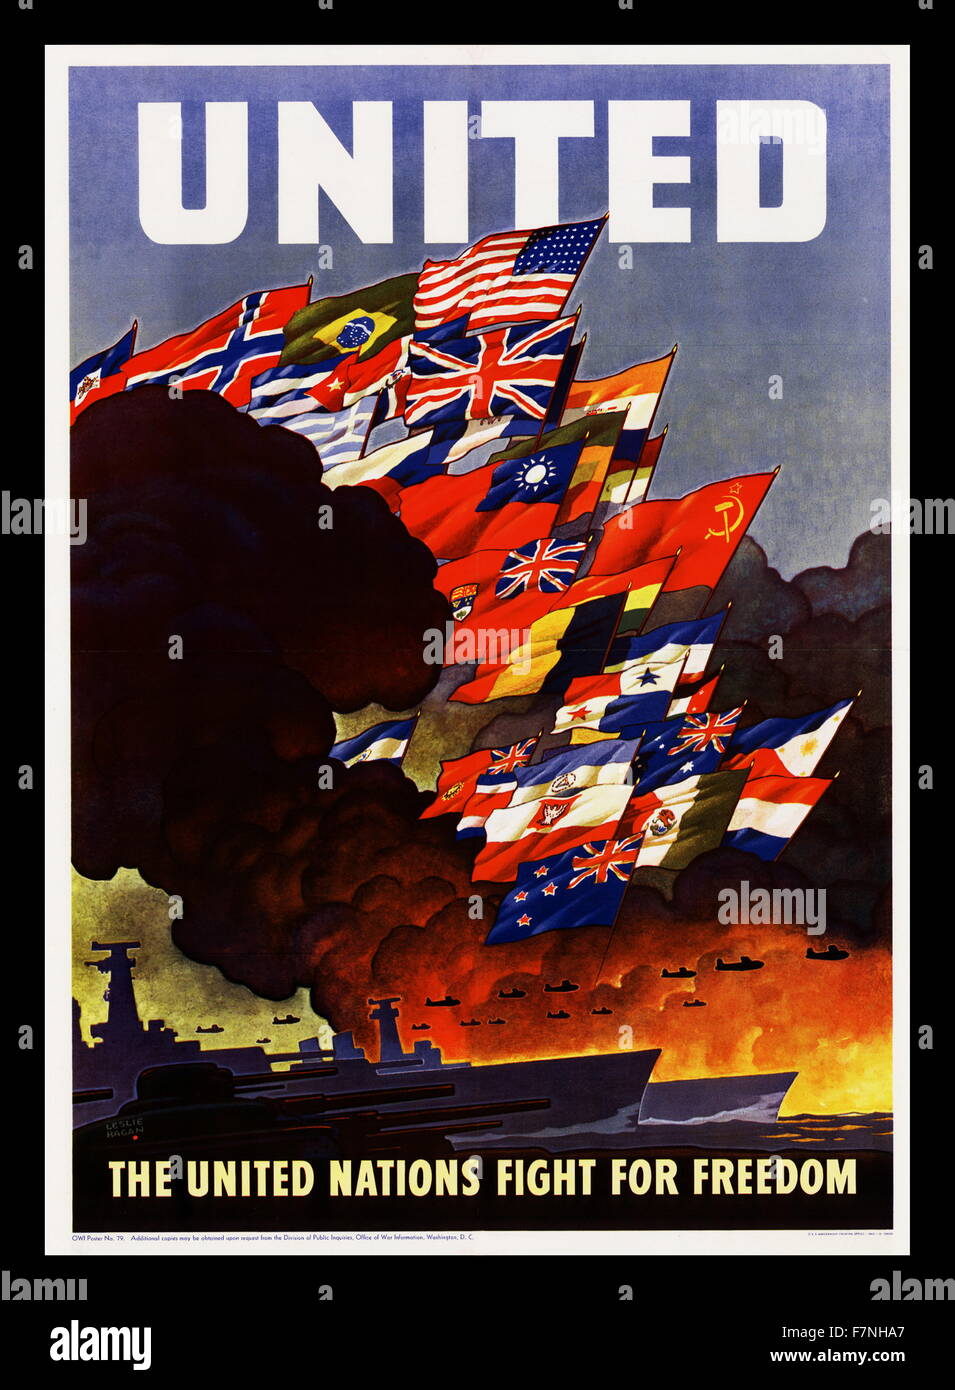 United Nations Second World War poster - Stock Image